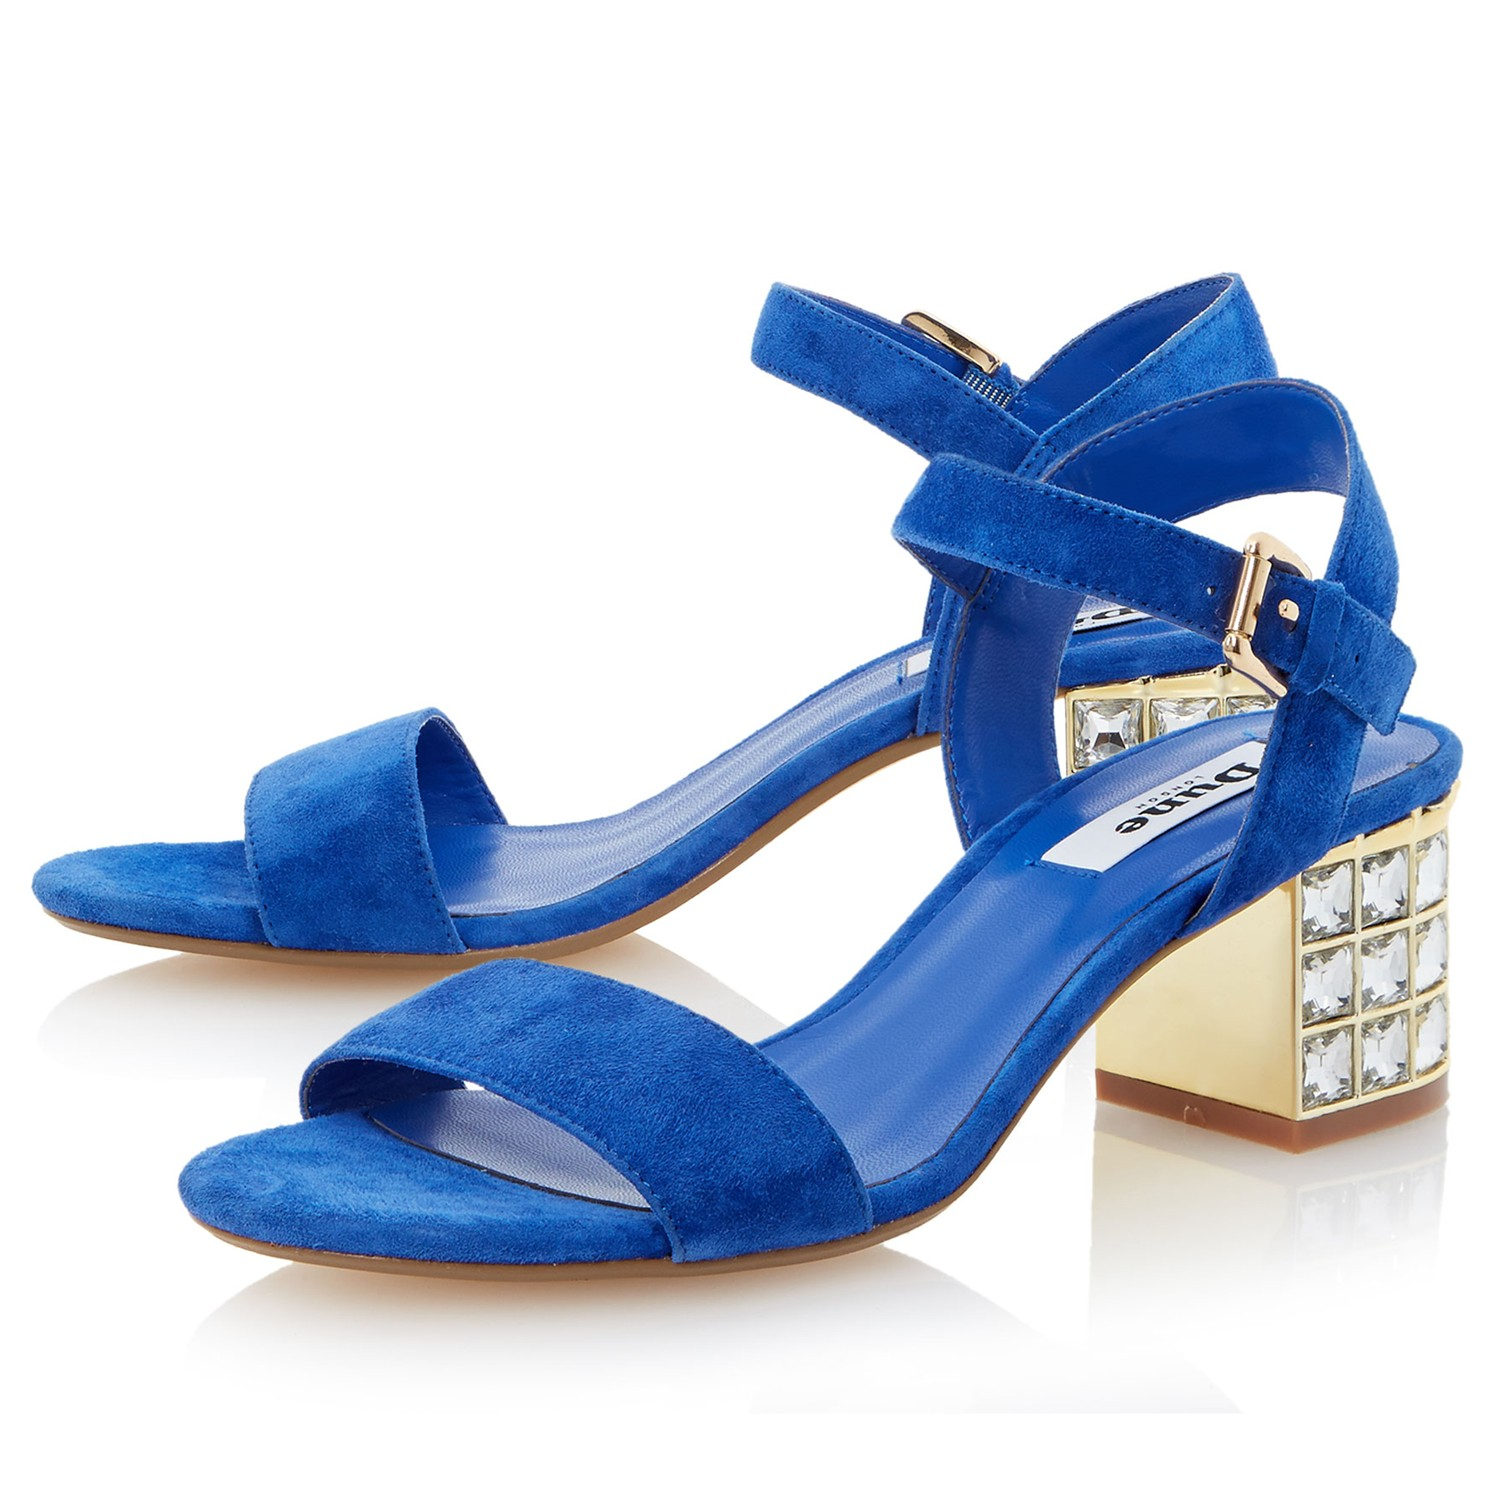 a097746ae0ecc4 Dune Harah Jewelled Block Heeled Sandals in Blue - Lyst clearance sale  dfebe ee608 ...